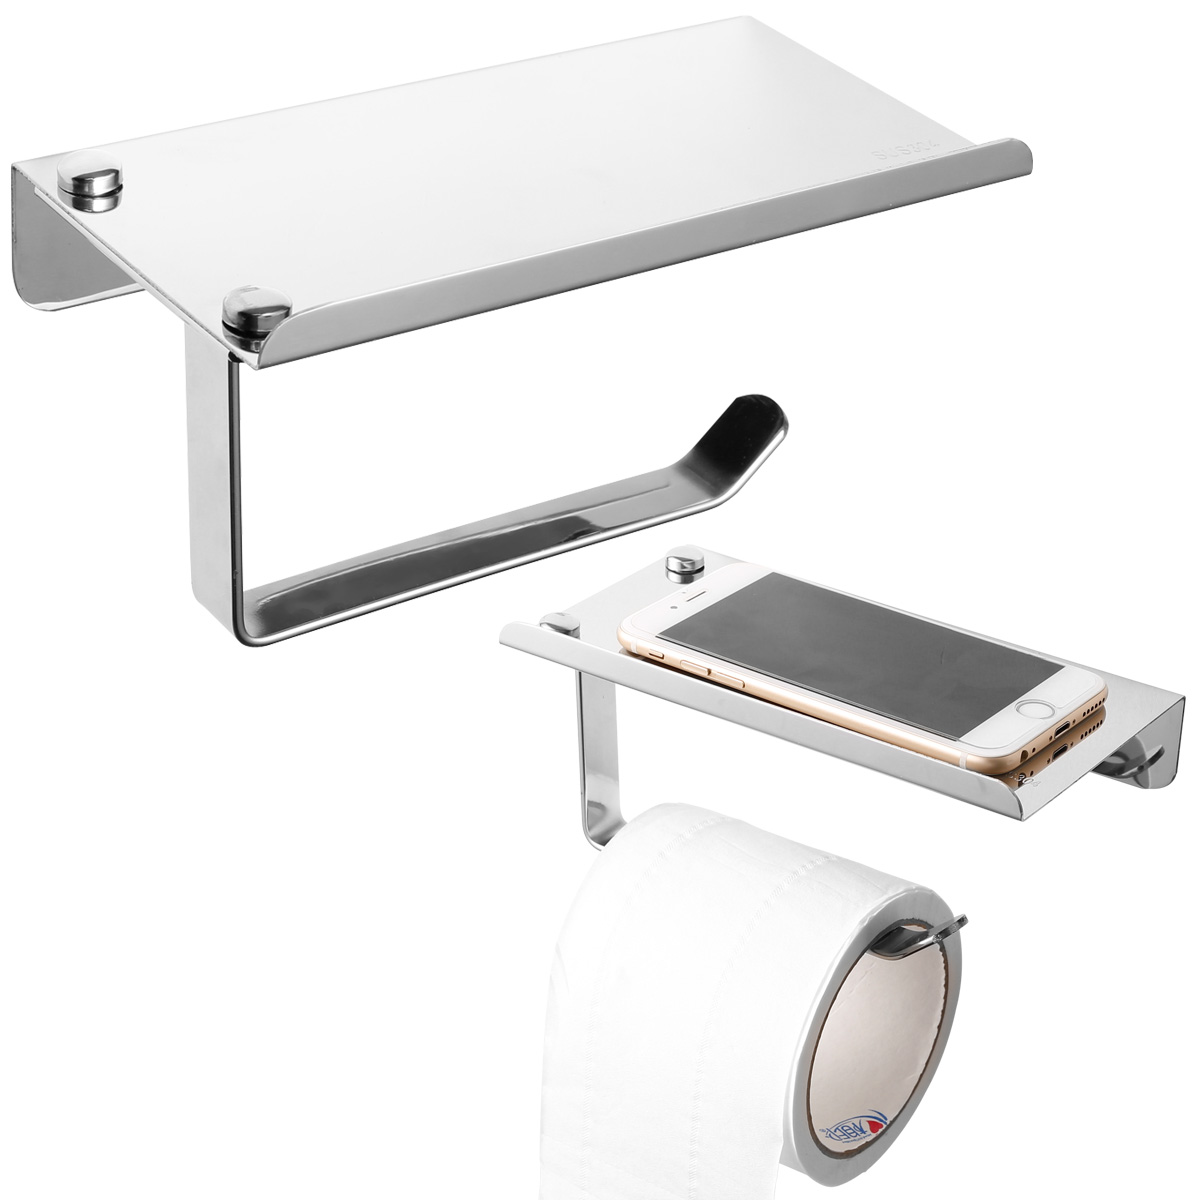 Silver Stainless Steel Bathroom Toilet Roll Holder Wall